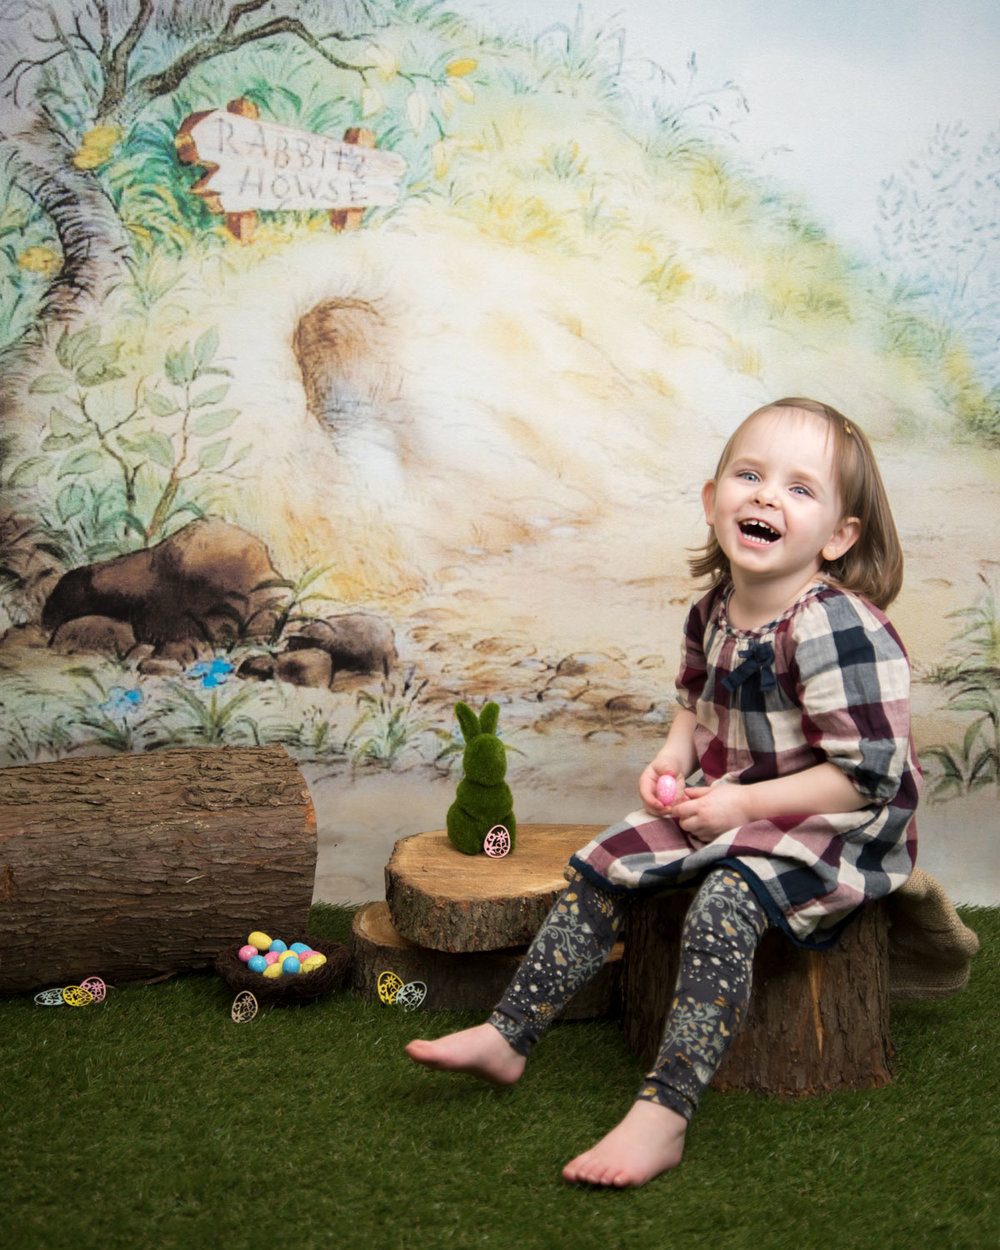 baby_photography_Ely_Cambridgeshire_easter_mini_session_pooh_themed_backdrop_girl_smiling.jpg